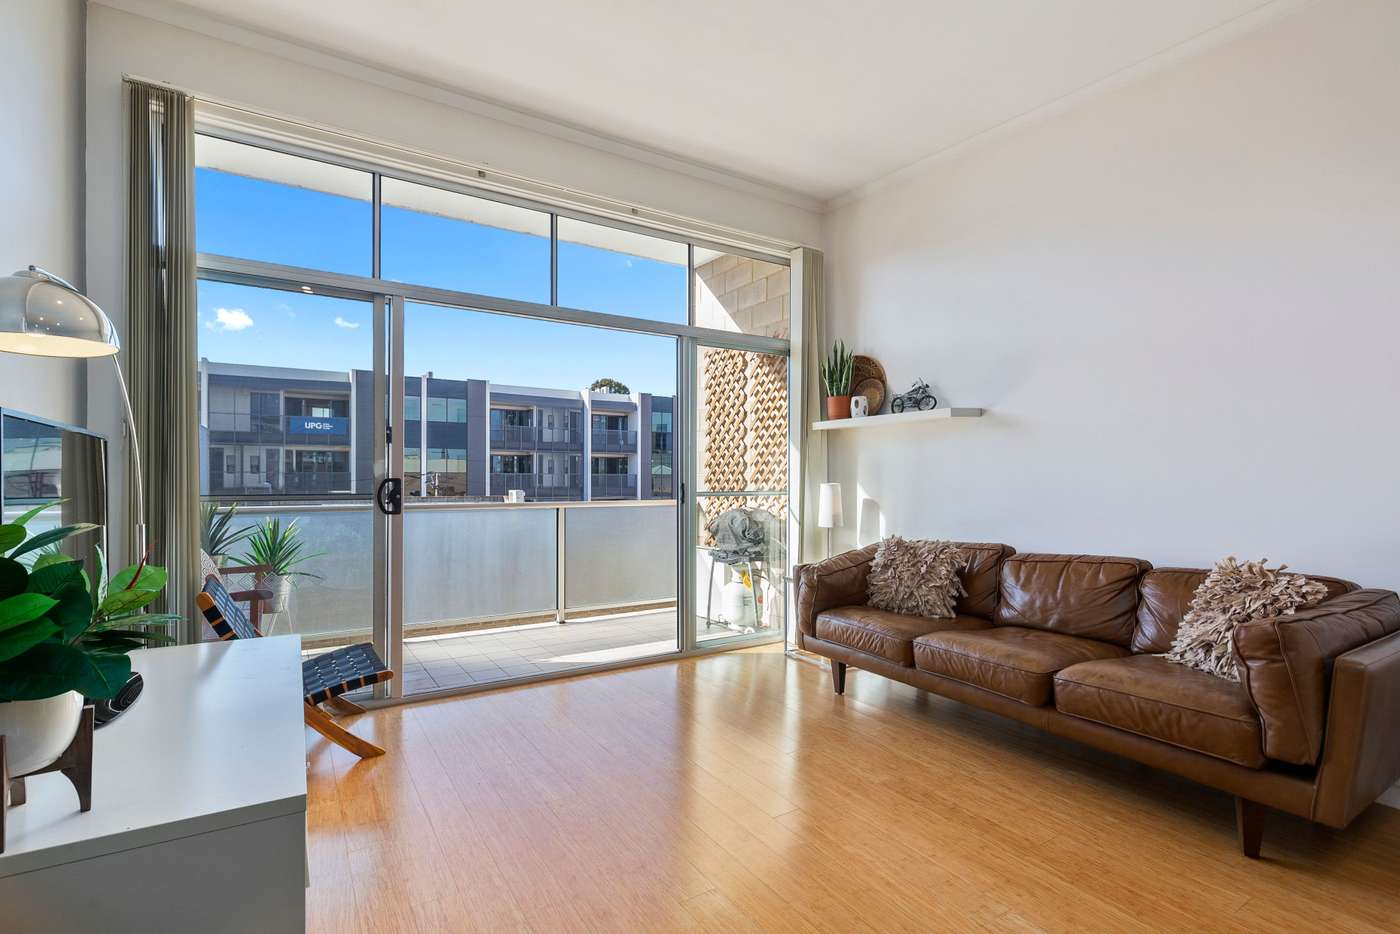 Seventh view of Homely house listing, 19 Colby Place, Adelaide SA 5000